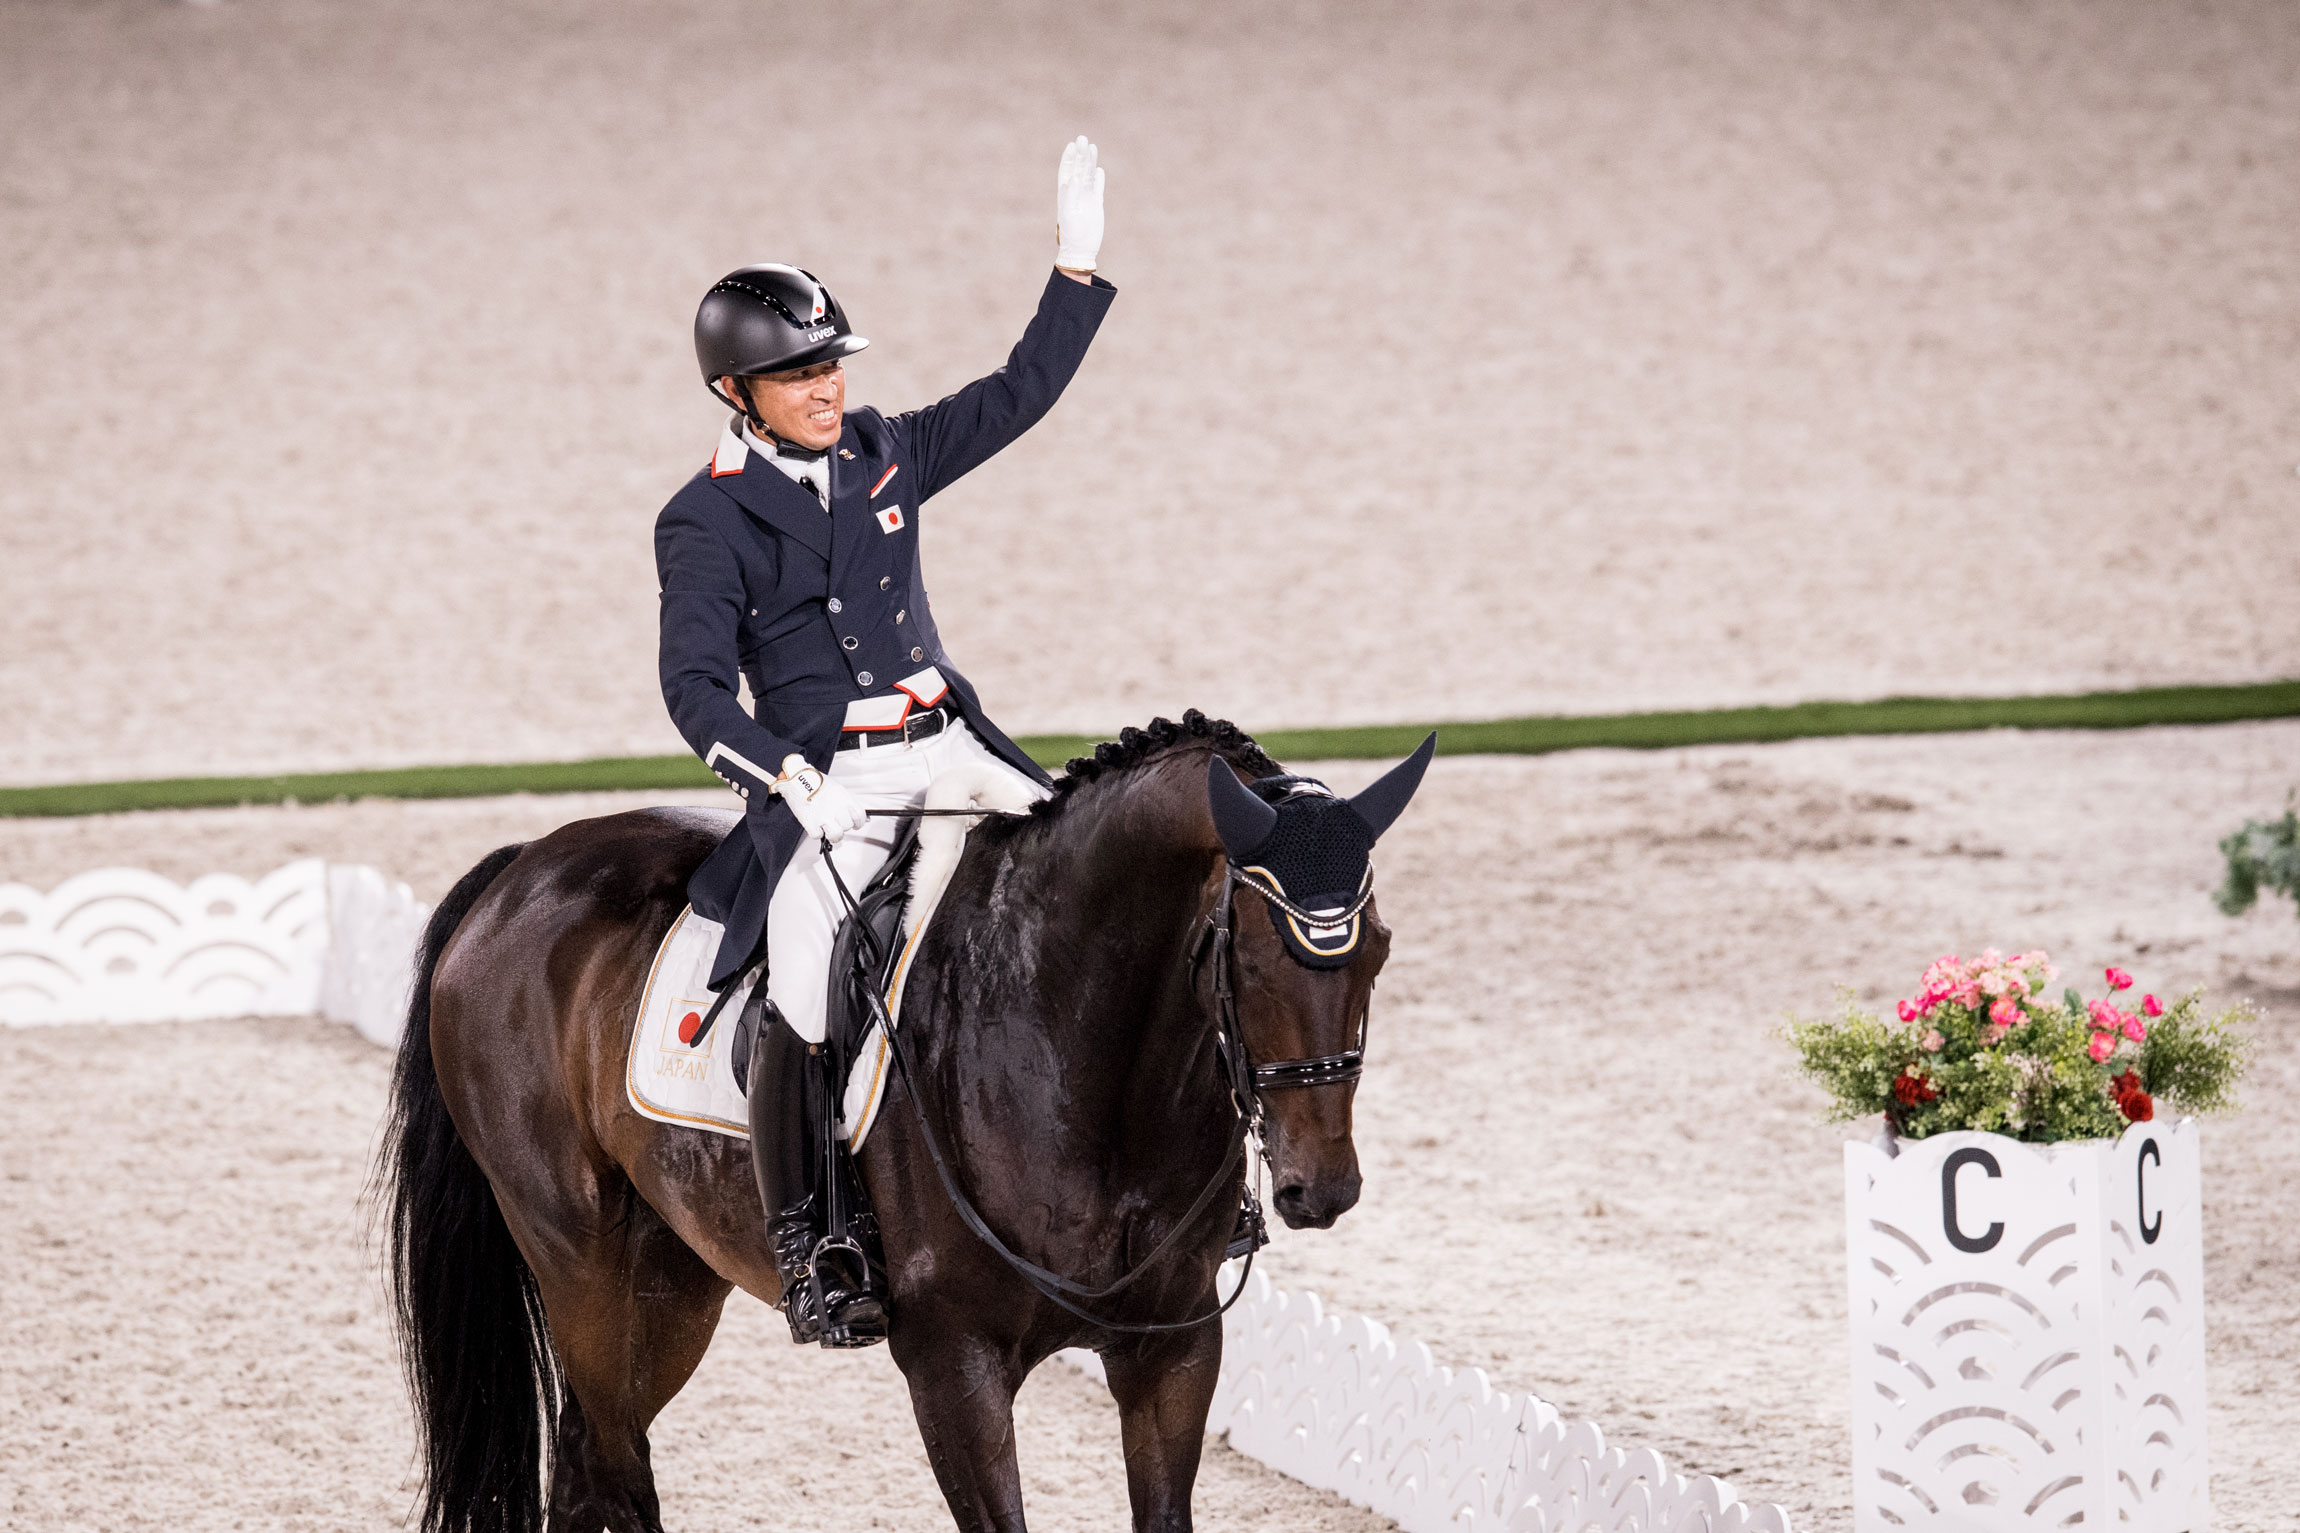 Where can I Watch Equestrian Dressage at the Tokyo 2020 Olympic Games?